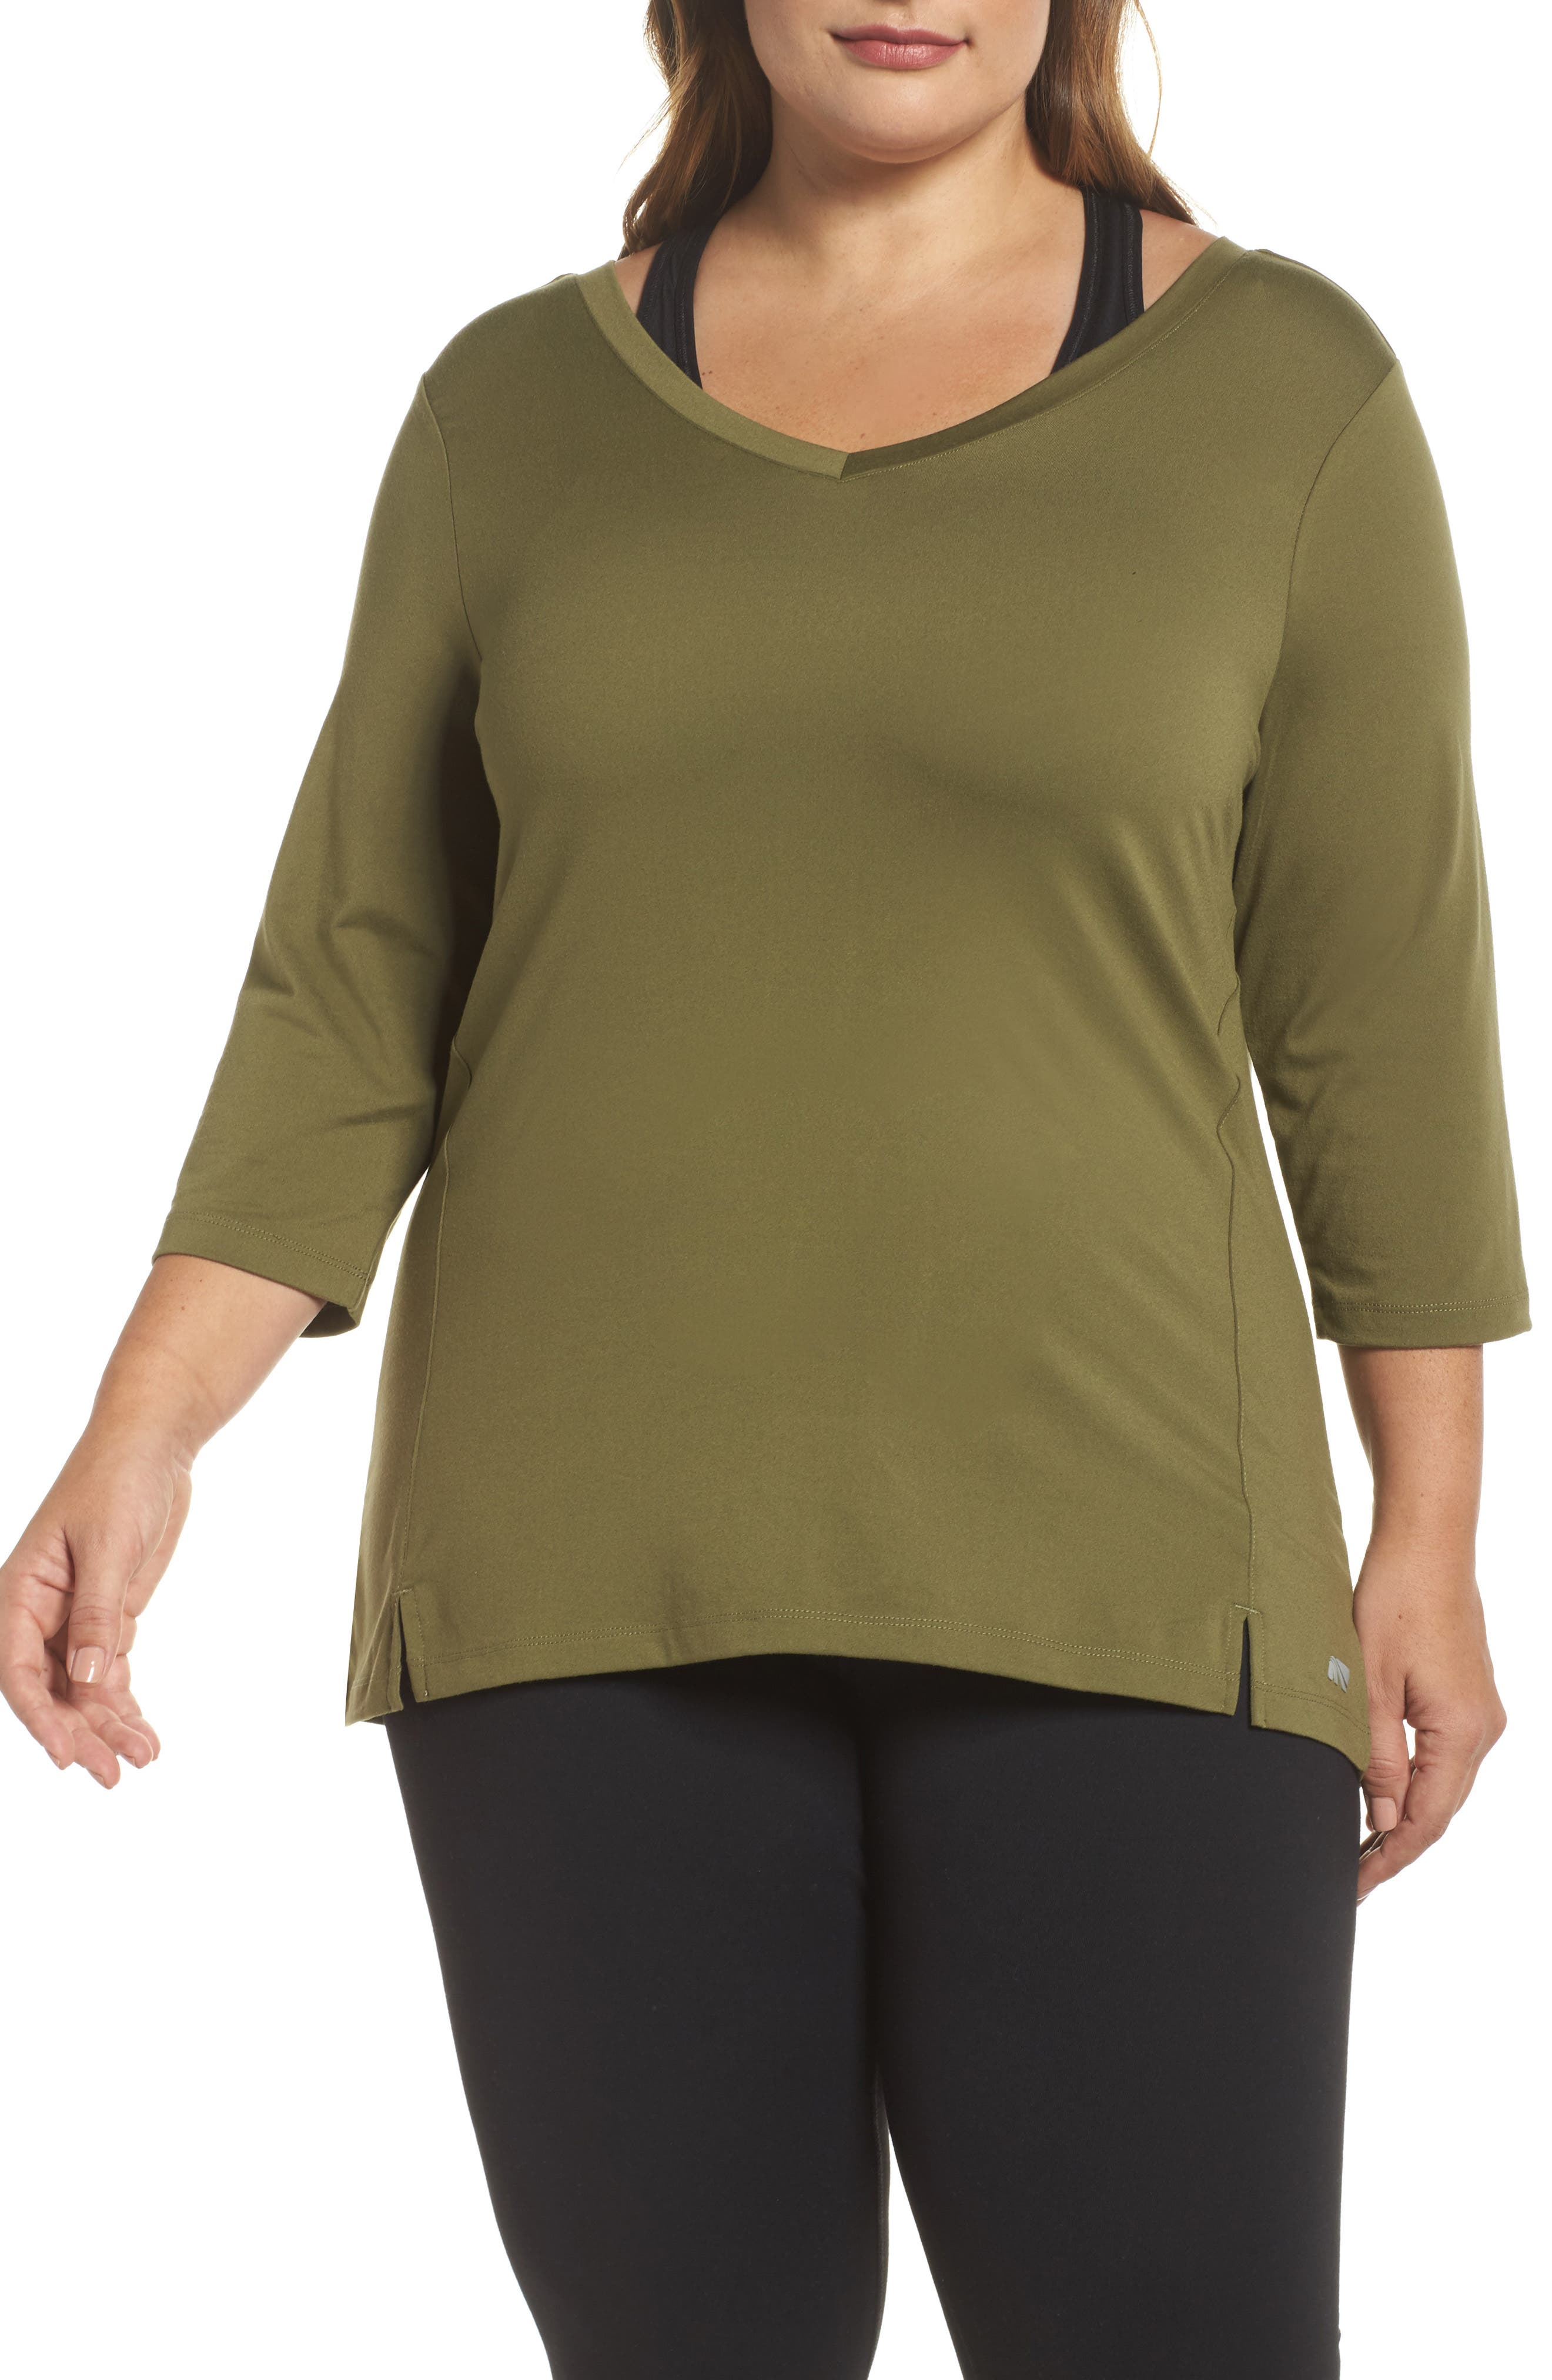 Alternate Image 1 Selected - Marika Curves Formation Top (Plus Size)